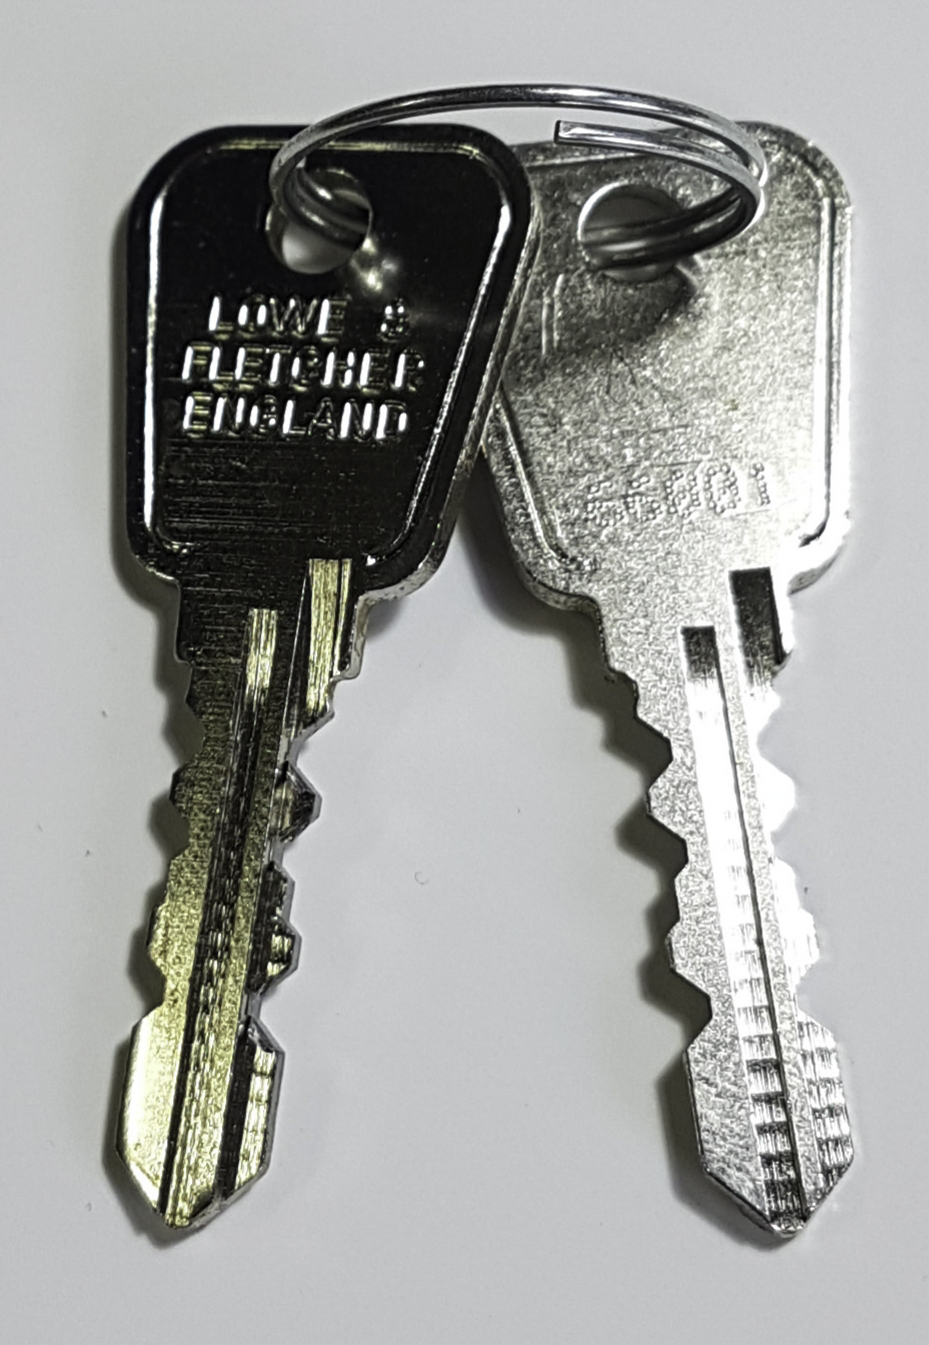 Lowe and Fletcher locker key cutting next day delivery